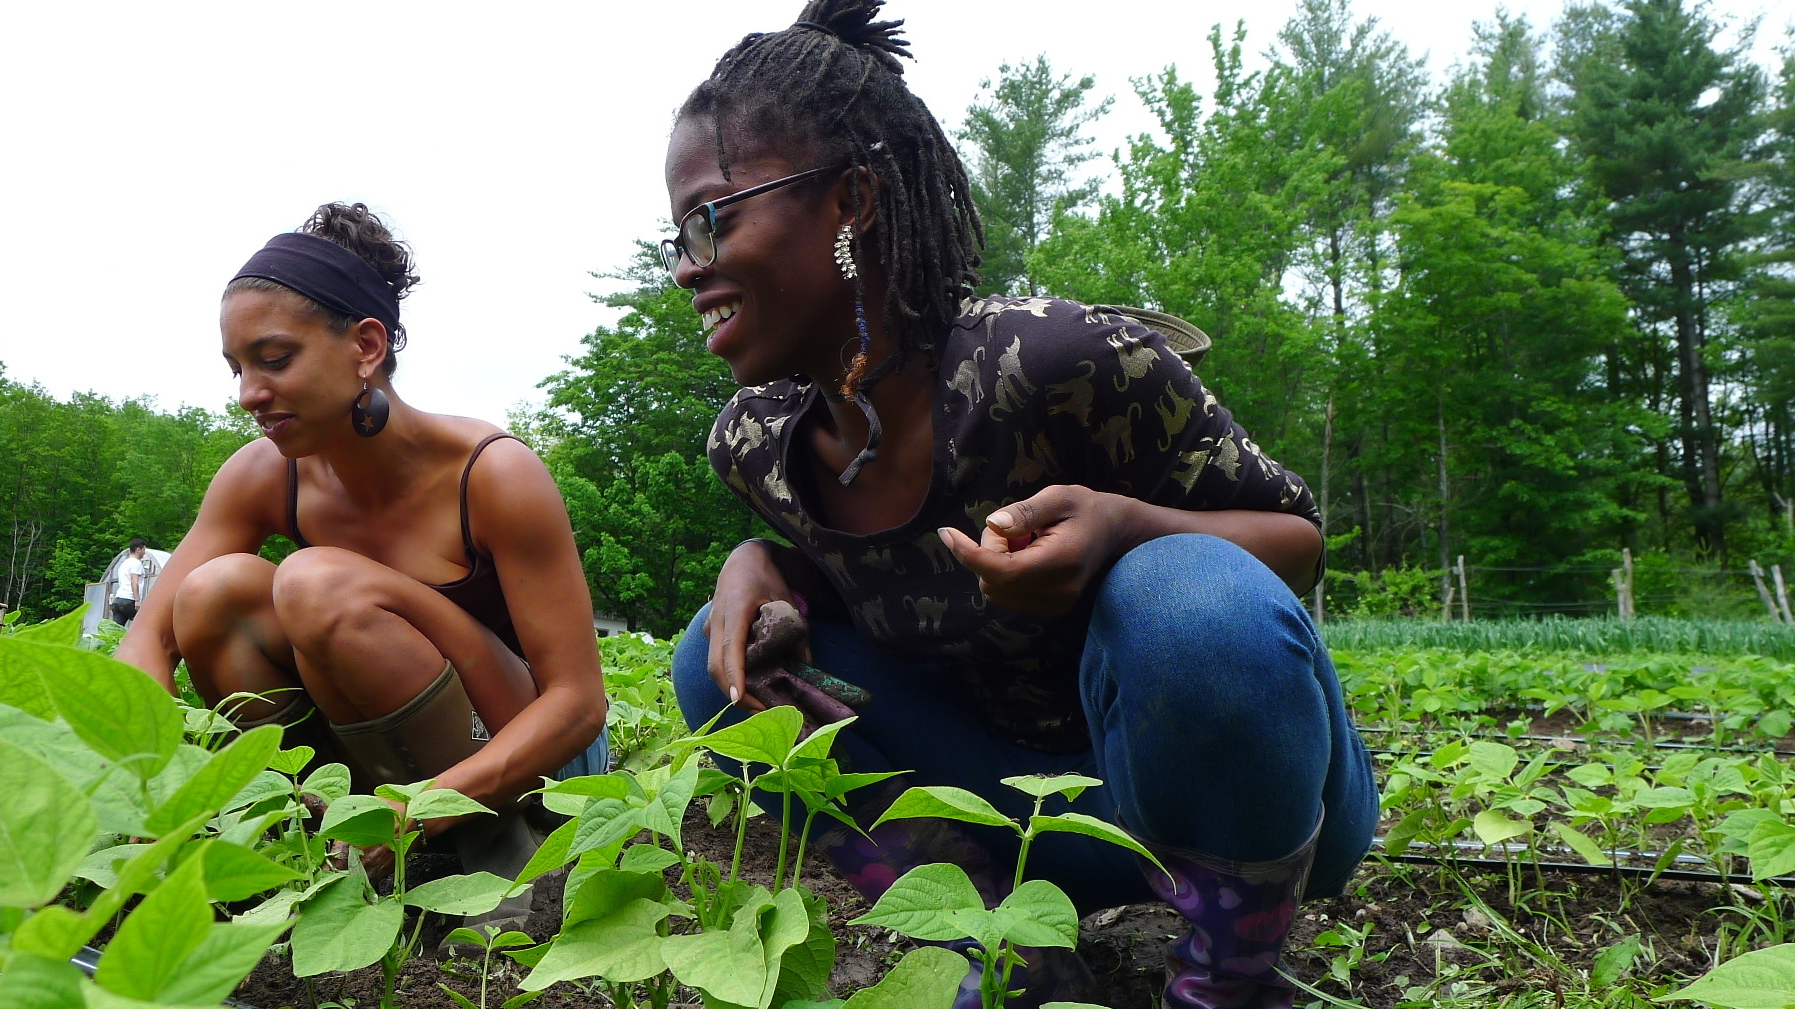 'Farming While Black': A Guide To Finding Power And Dignity Through Food